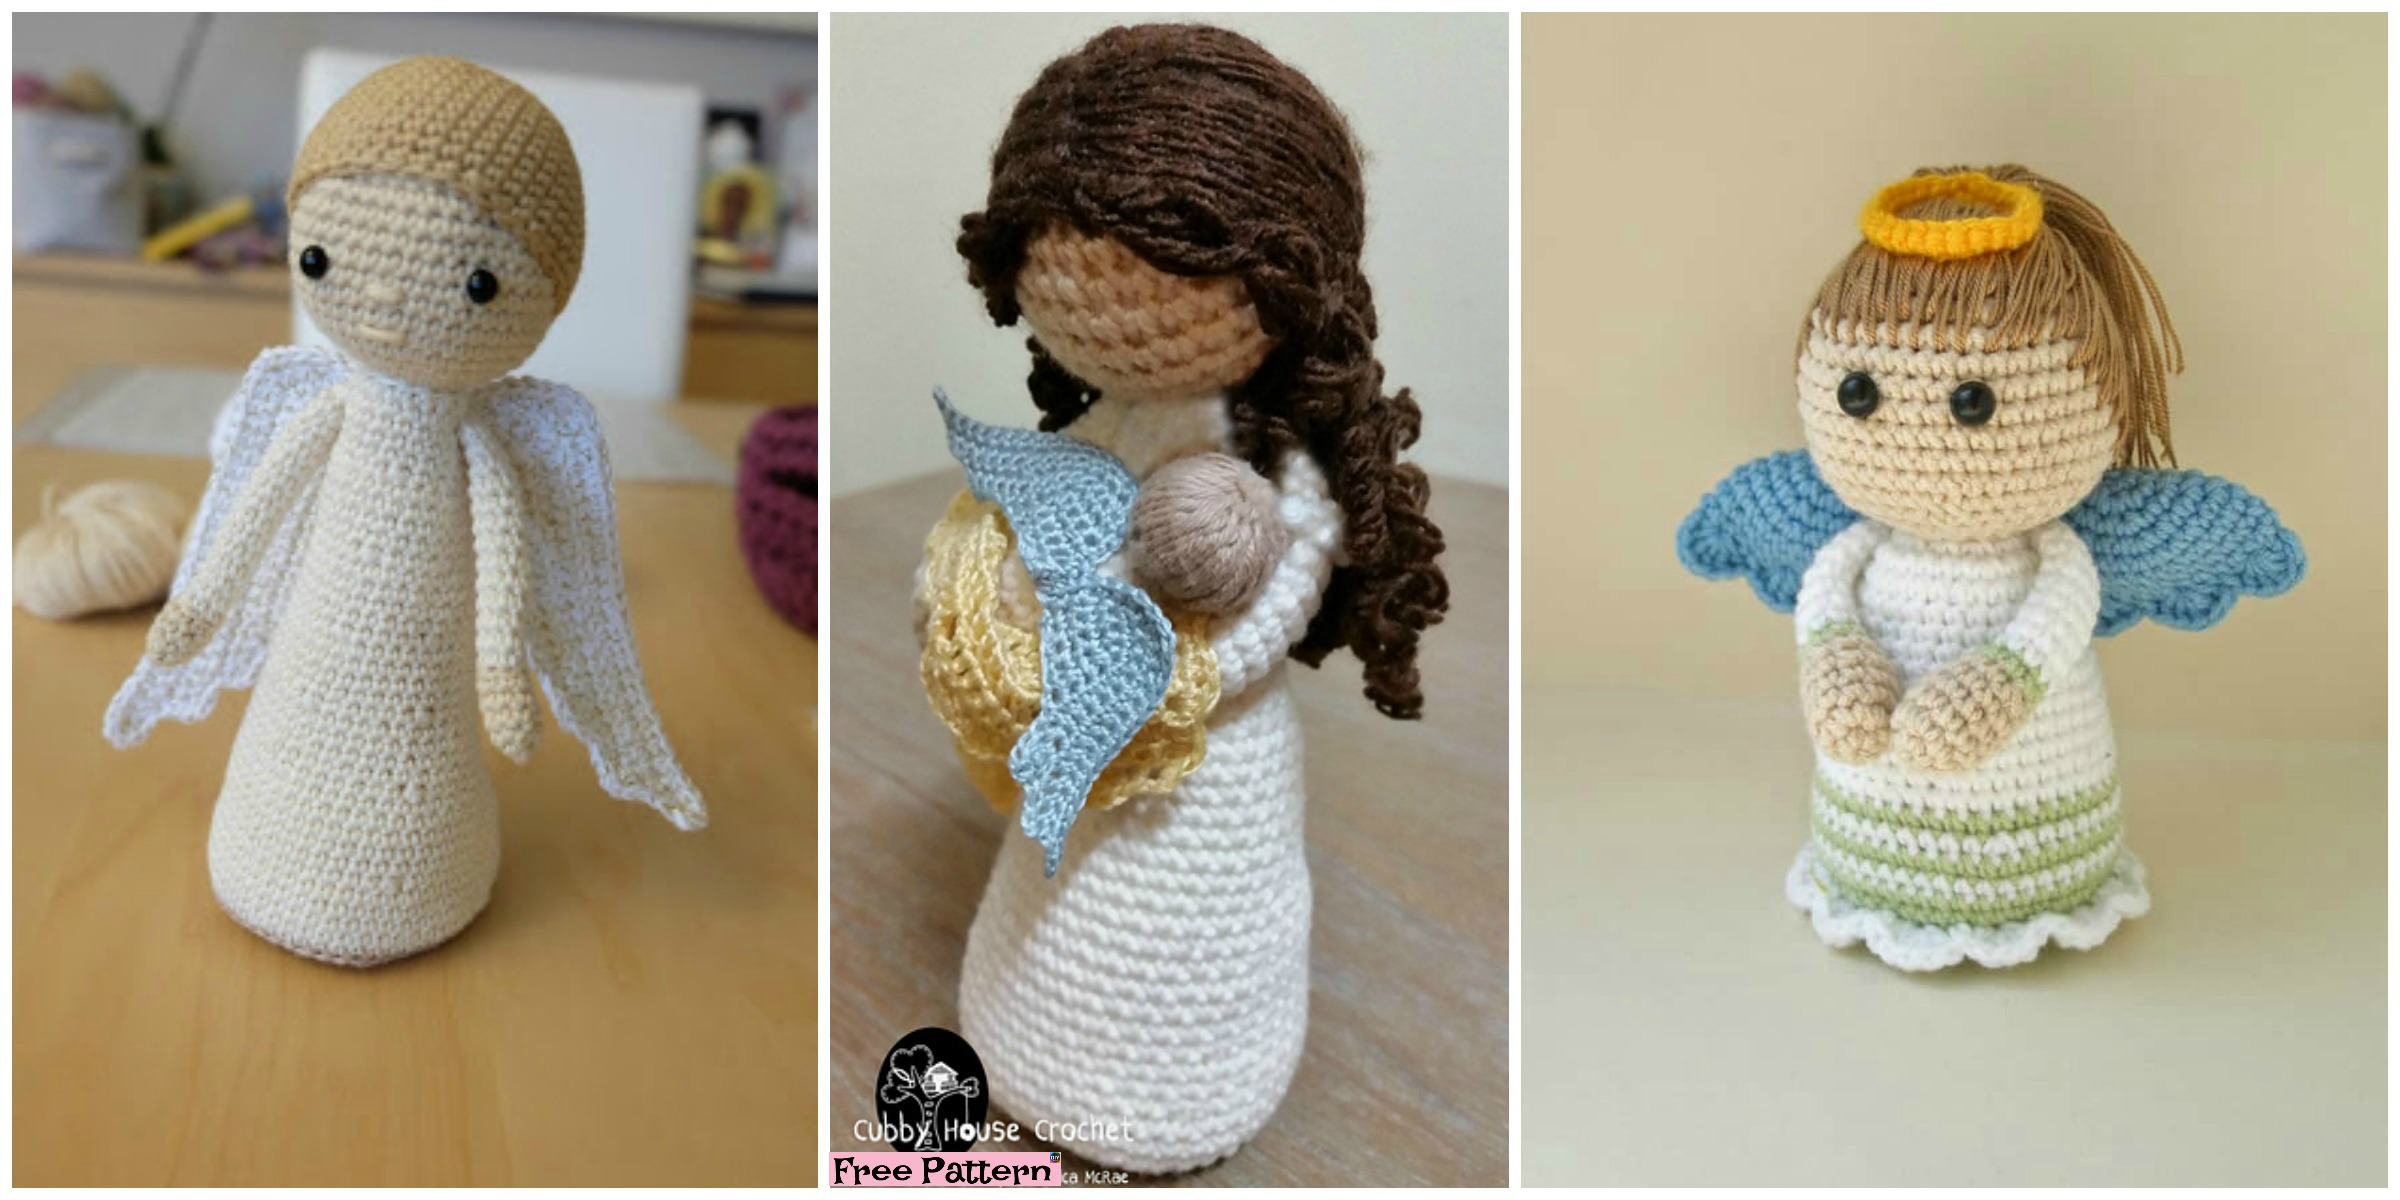 PATTERN amigurumi crochet dolls pattern - Good girls PDF | Crochet ... | 1200x2400